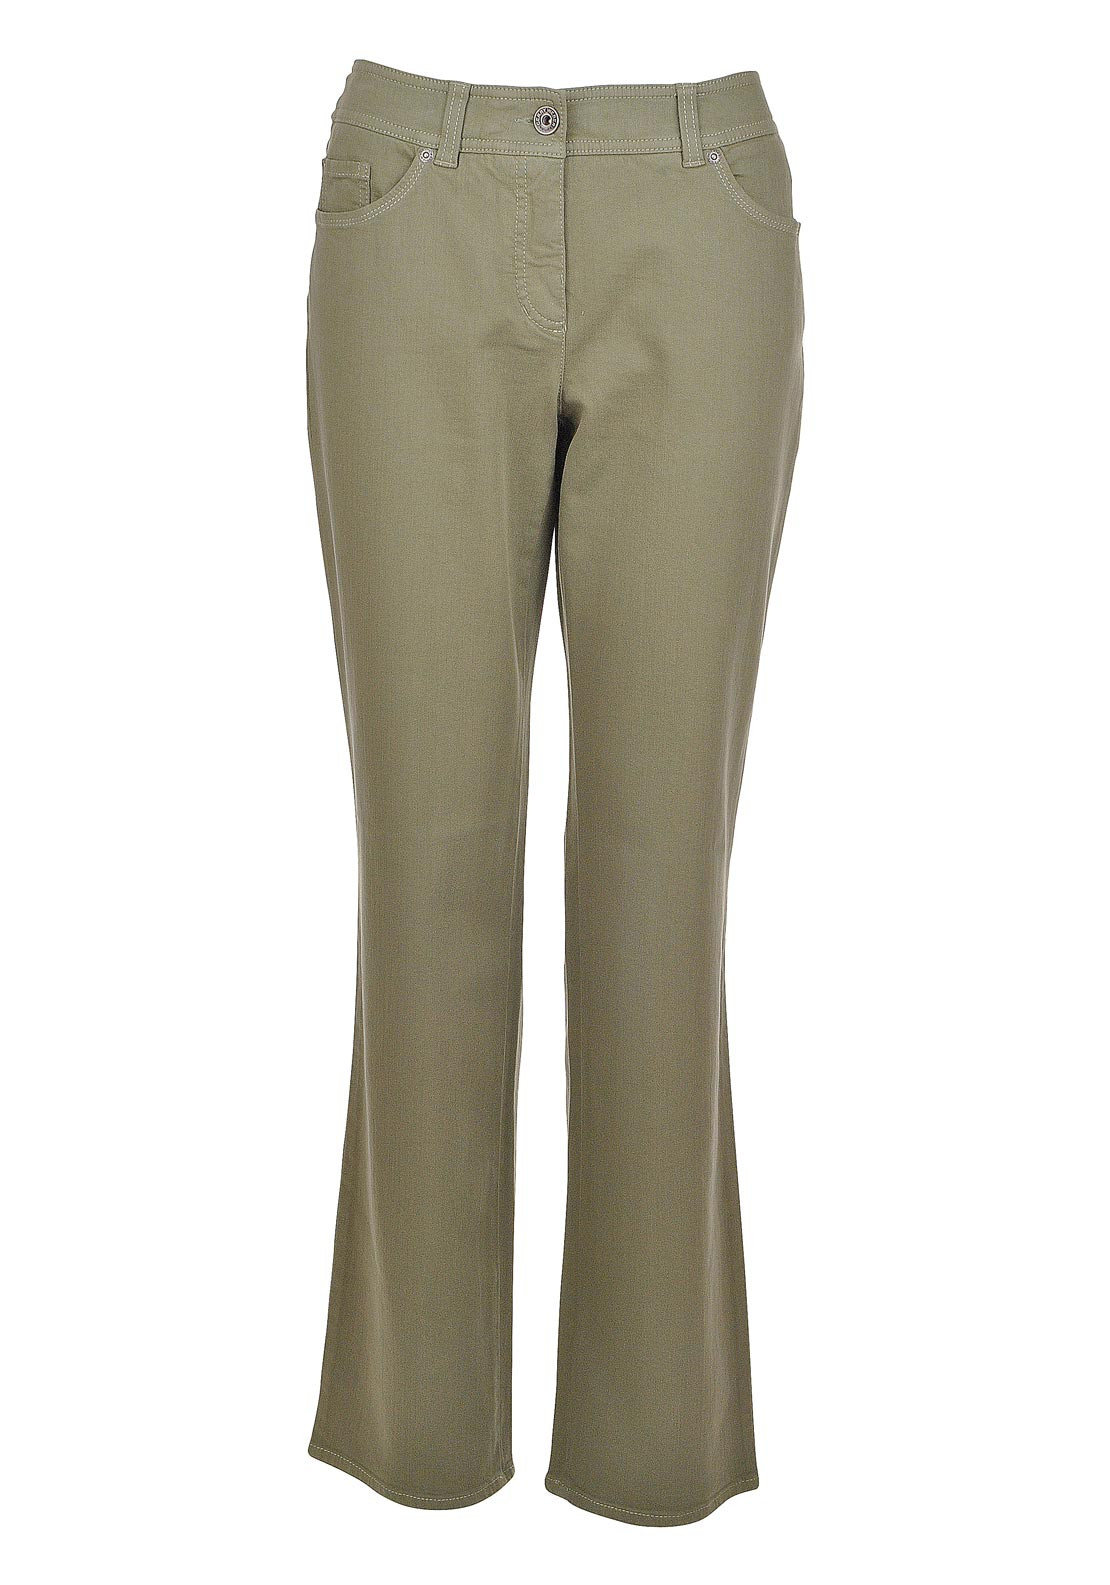 Gerry Weber Danny Wide Leg Jeans, Olive Green